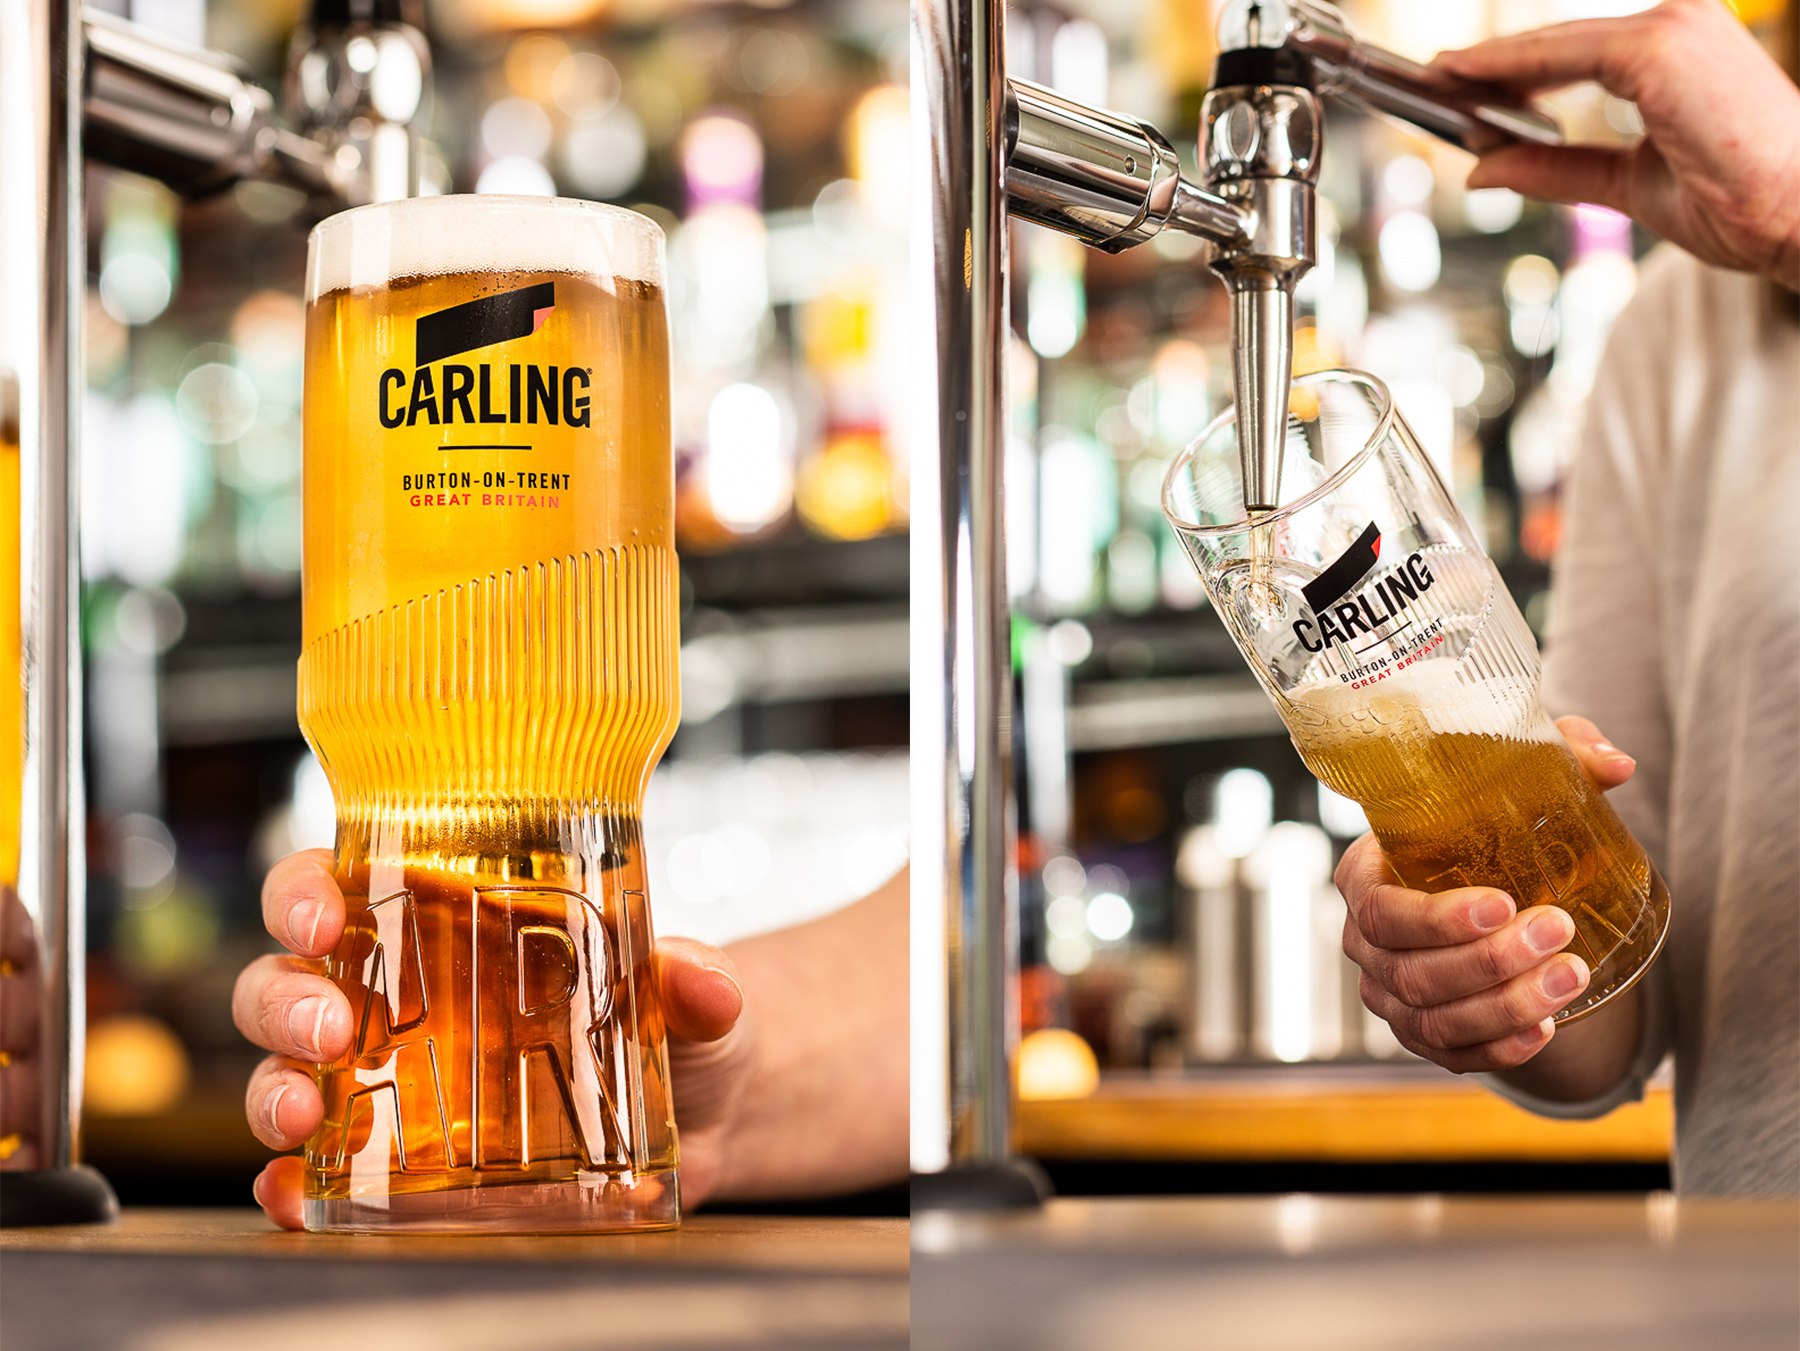 Carling lifestyle photography for Molson Coors